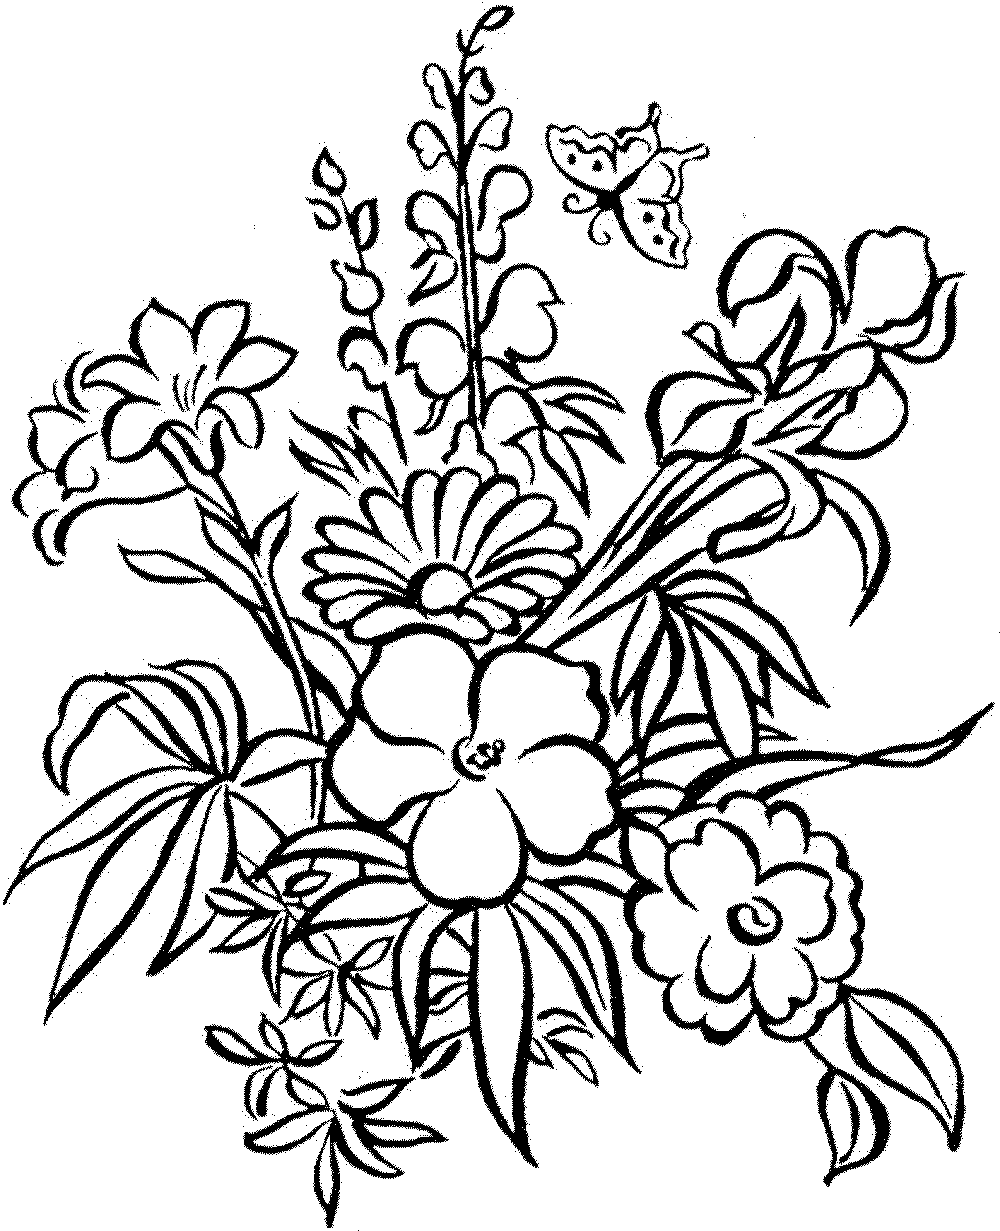 flower coloring pages free printable free printable flower coloring pages for kids cool2bkids pages printable flower free coloring